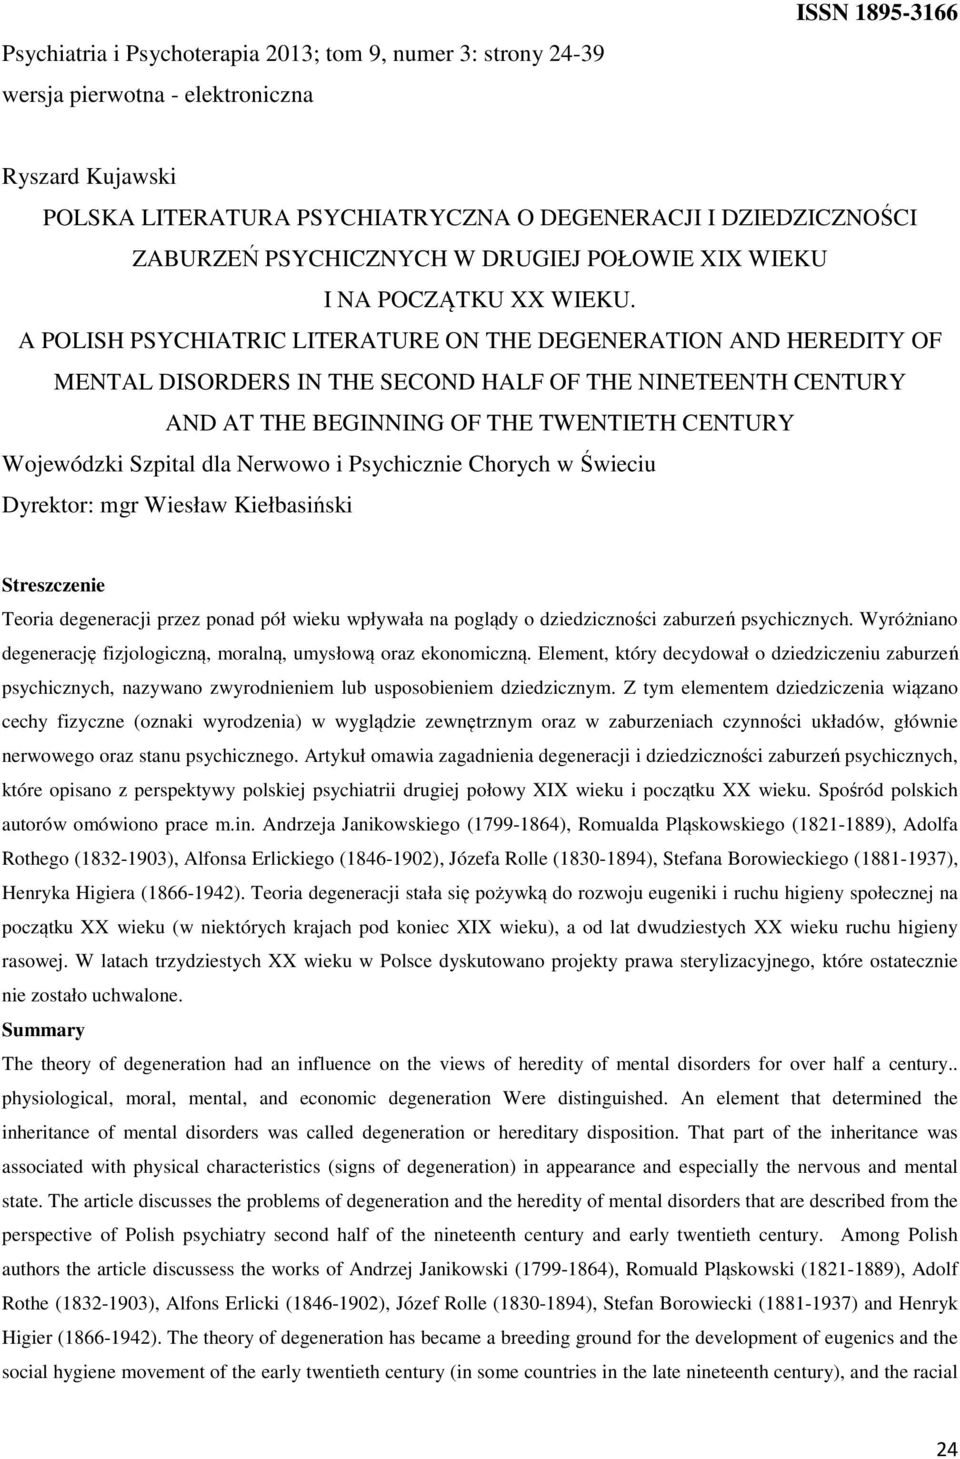 A POLISH PSYCHIATRIC LITERATURE ON THE DEGENERATION AND HEREDITY OF MENTAL DISORDERS IN THE SECOND HALF OF THE NINETEENTH CENTURY AND AT THE BEGINNING OF THE TWENTIETH CENTURY Wojewódzki Szpital dla